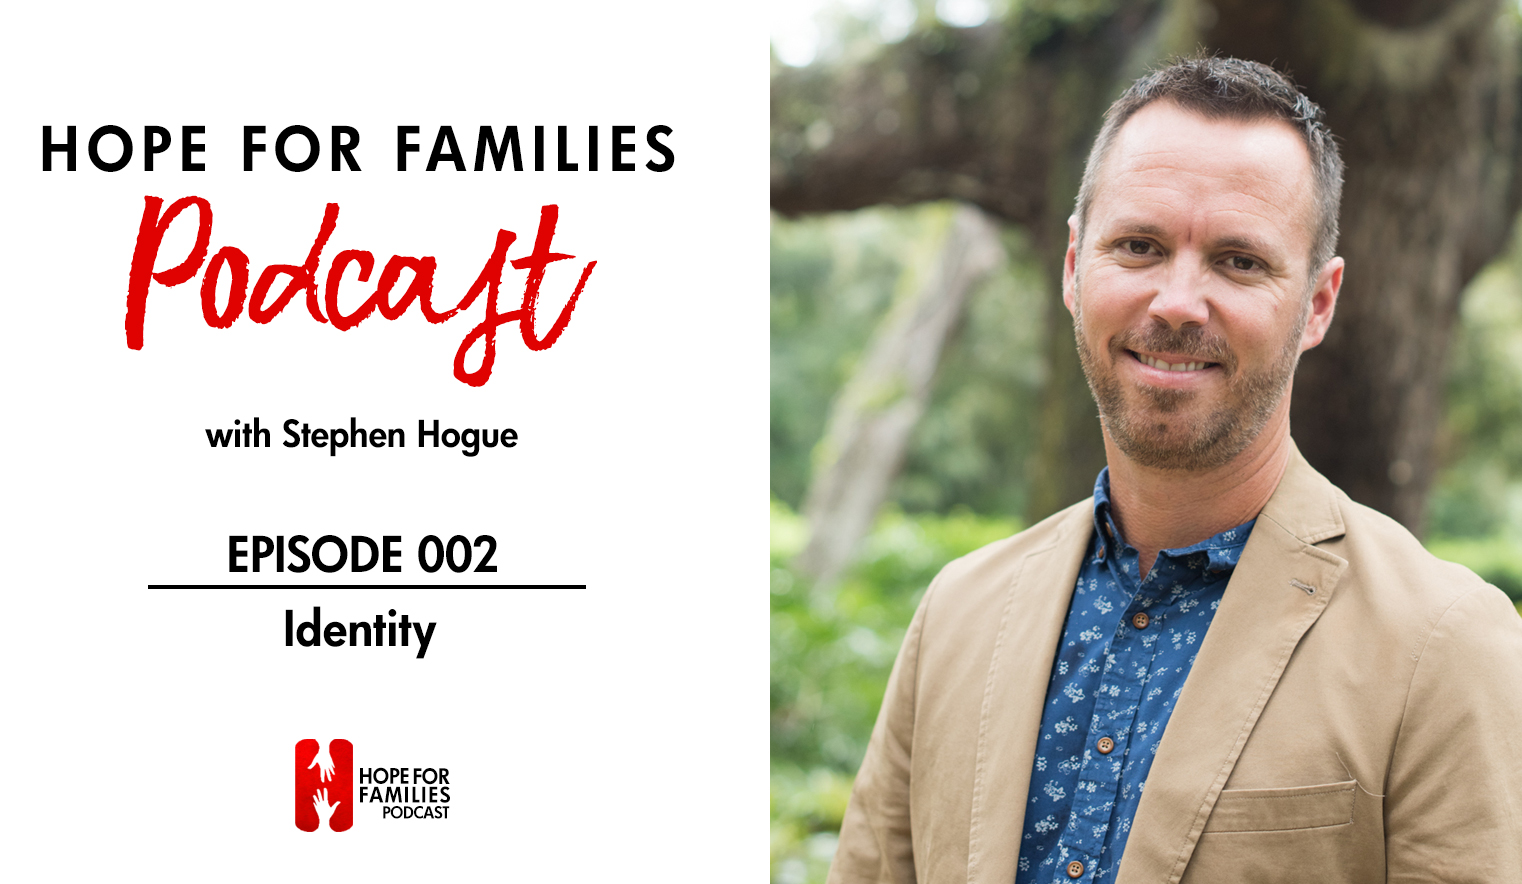 Hope For Families Podcast: Episode 002: Identity